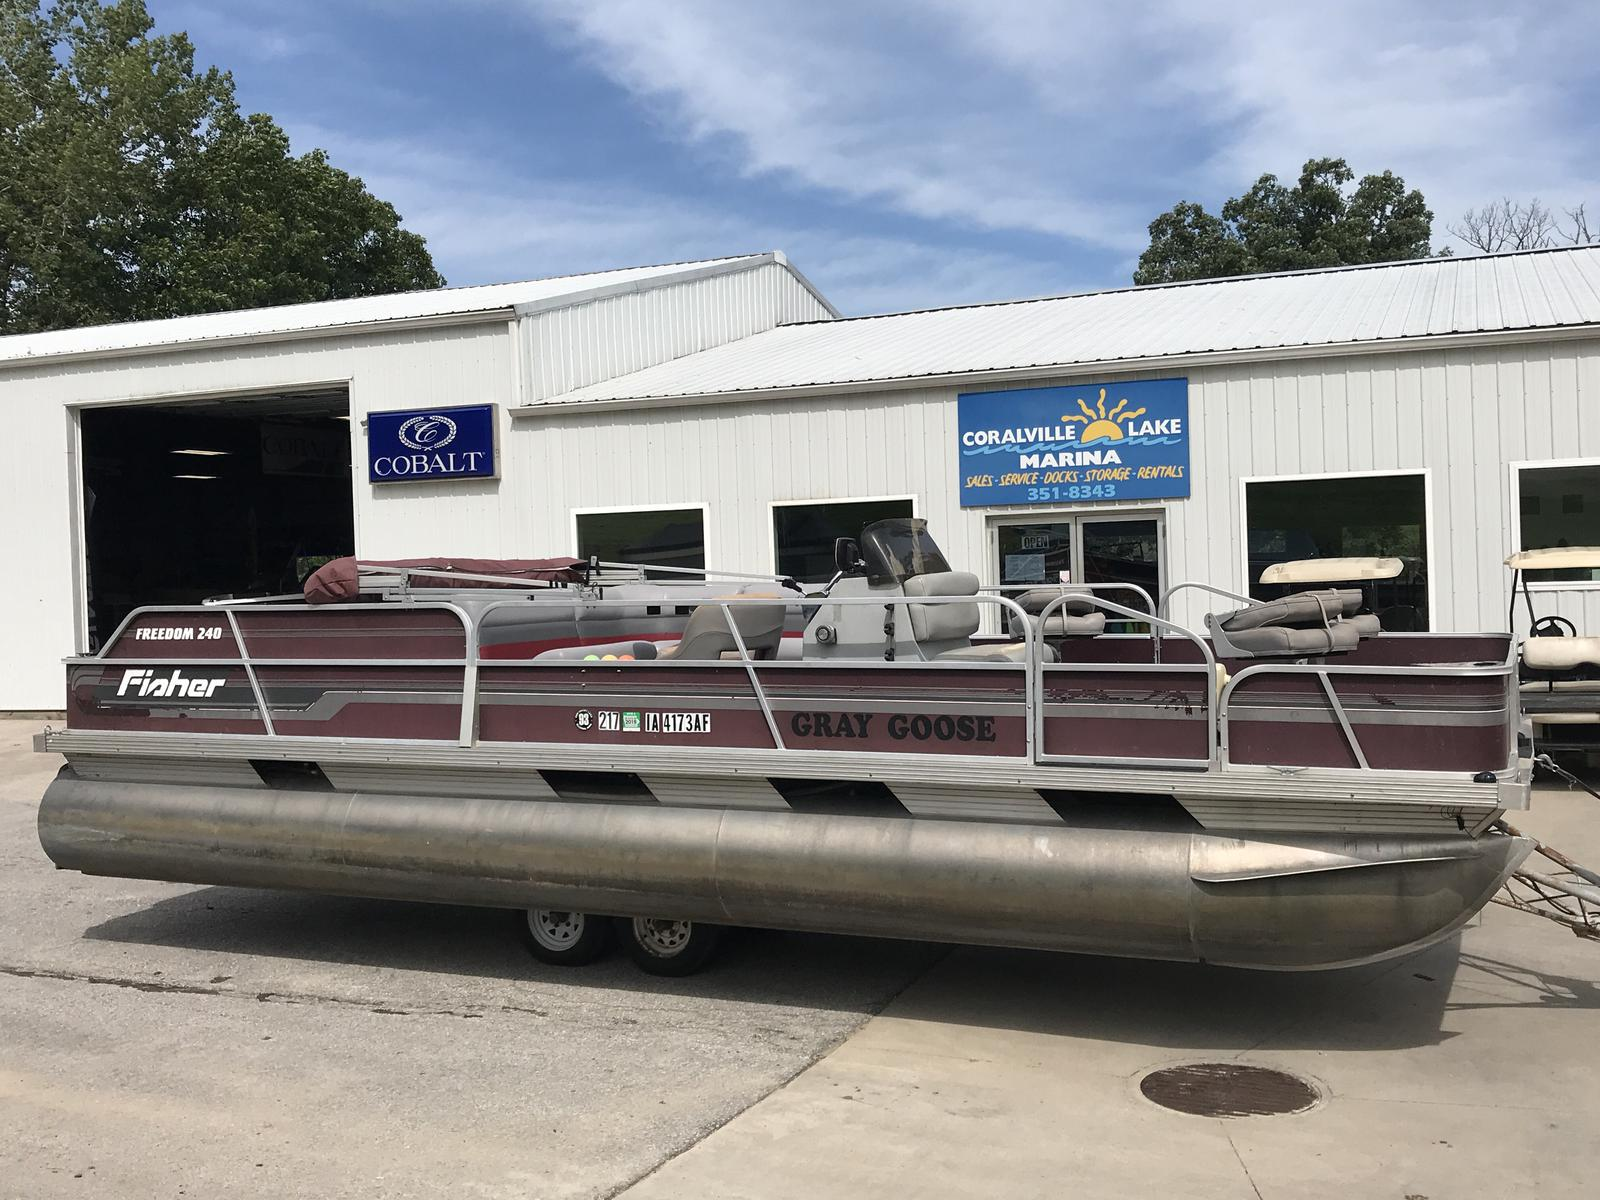 Fisher Boats Freedom 240 Fish